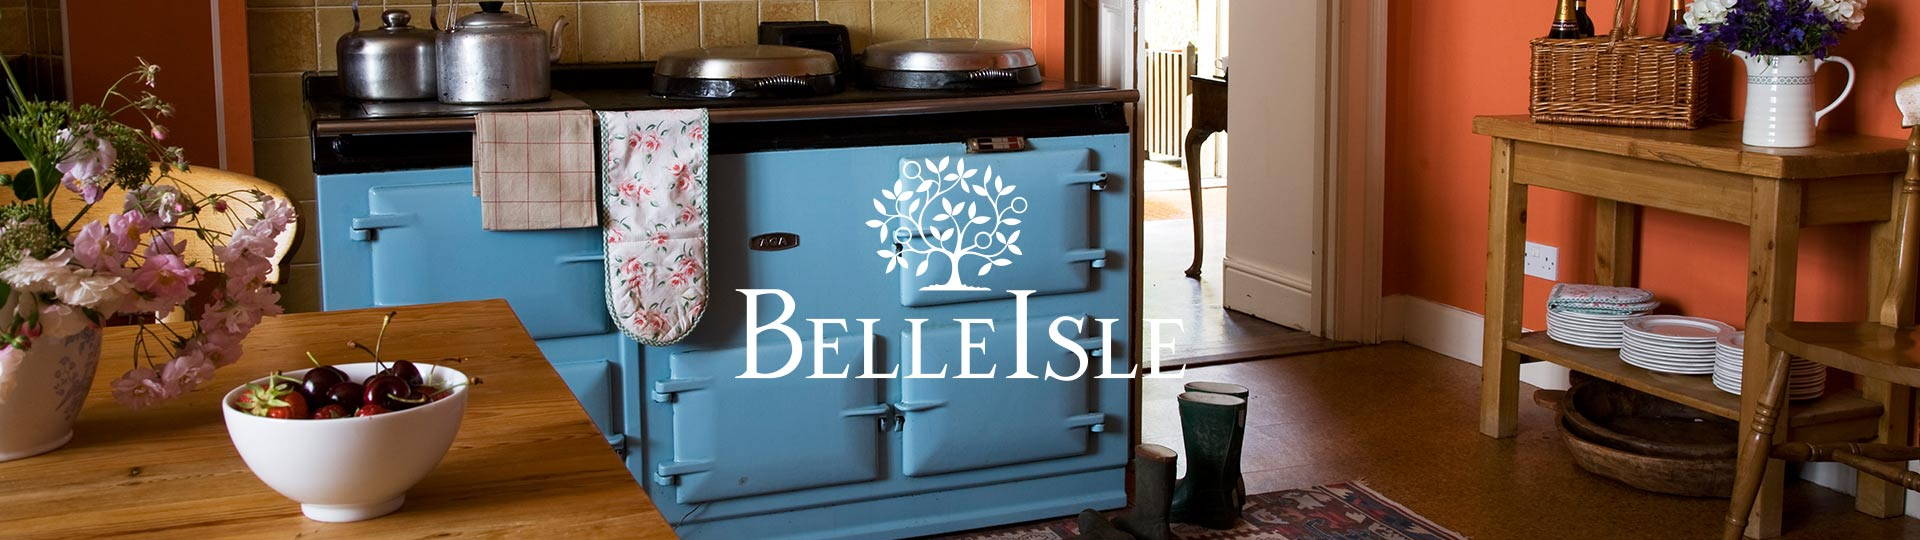 New Web Design Client: Belle Isle Estate Northern Ireland main image